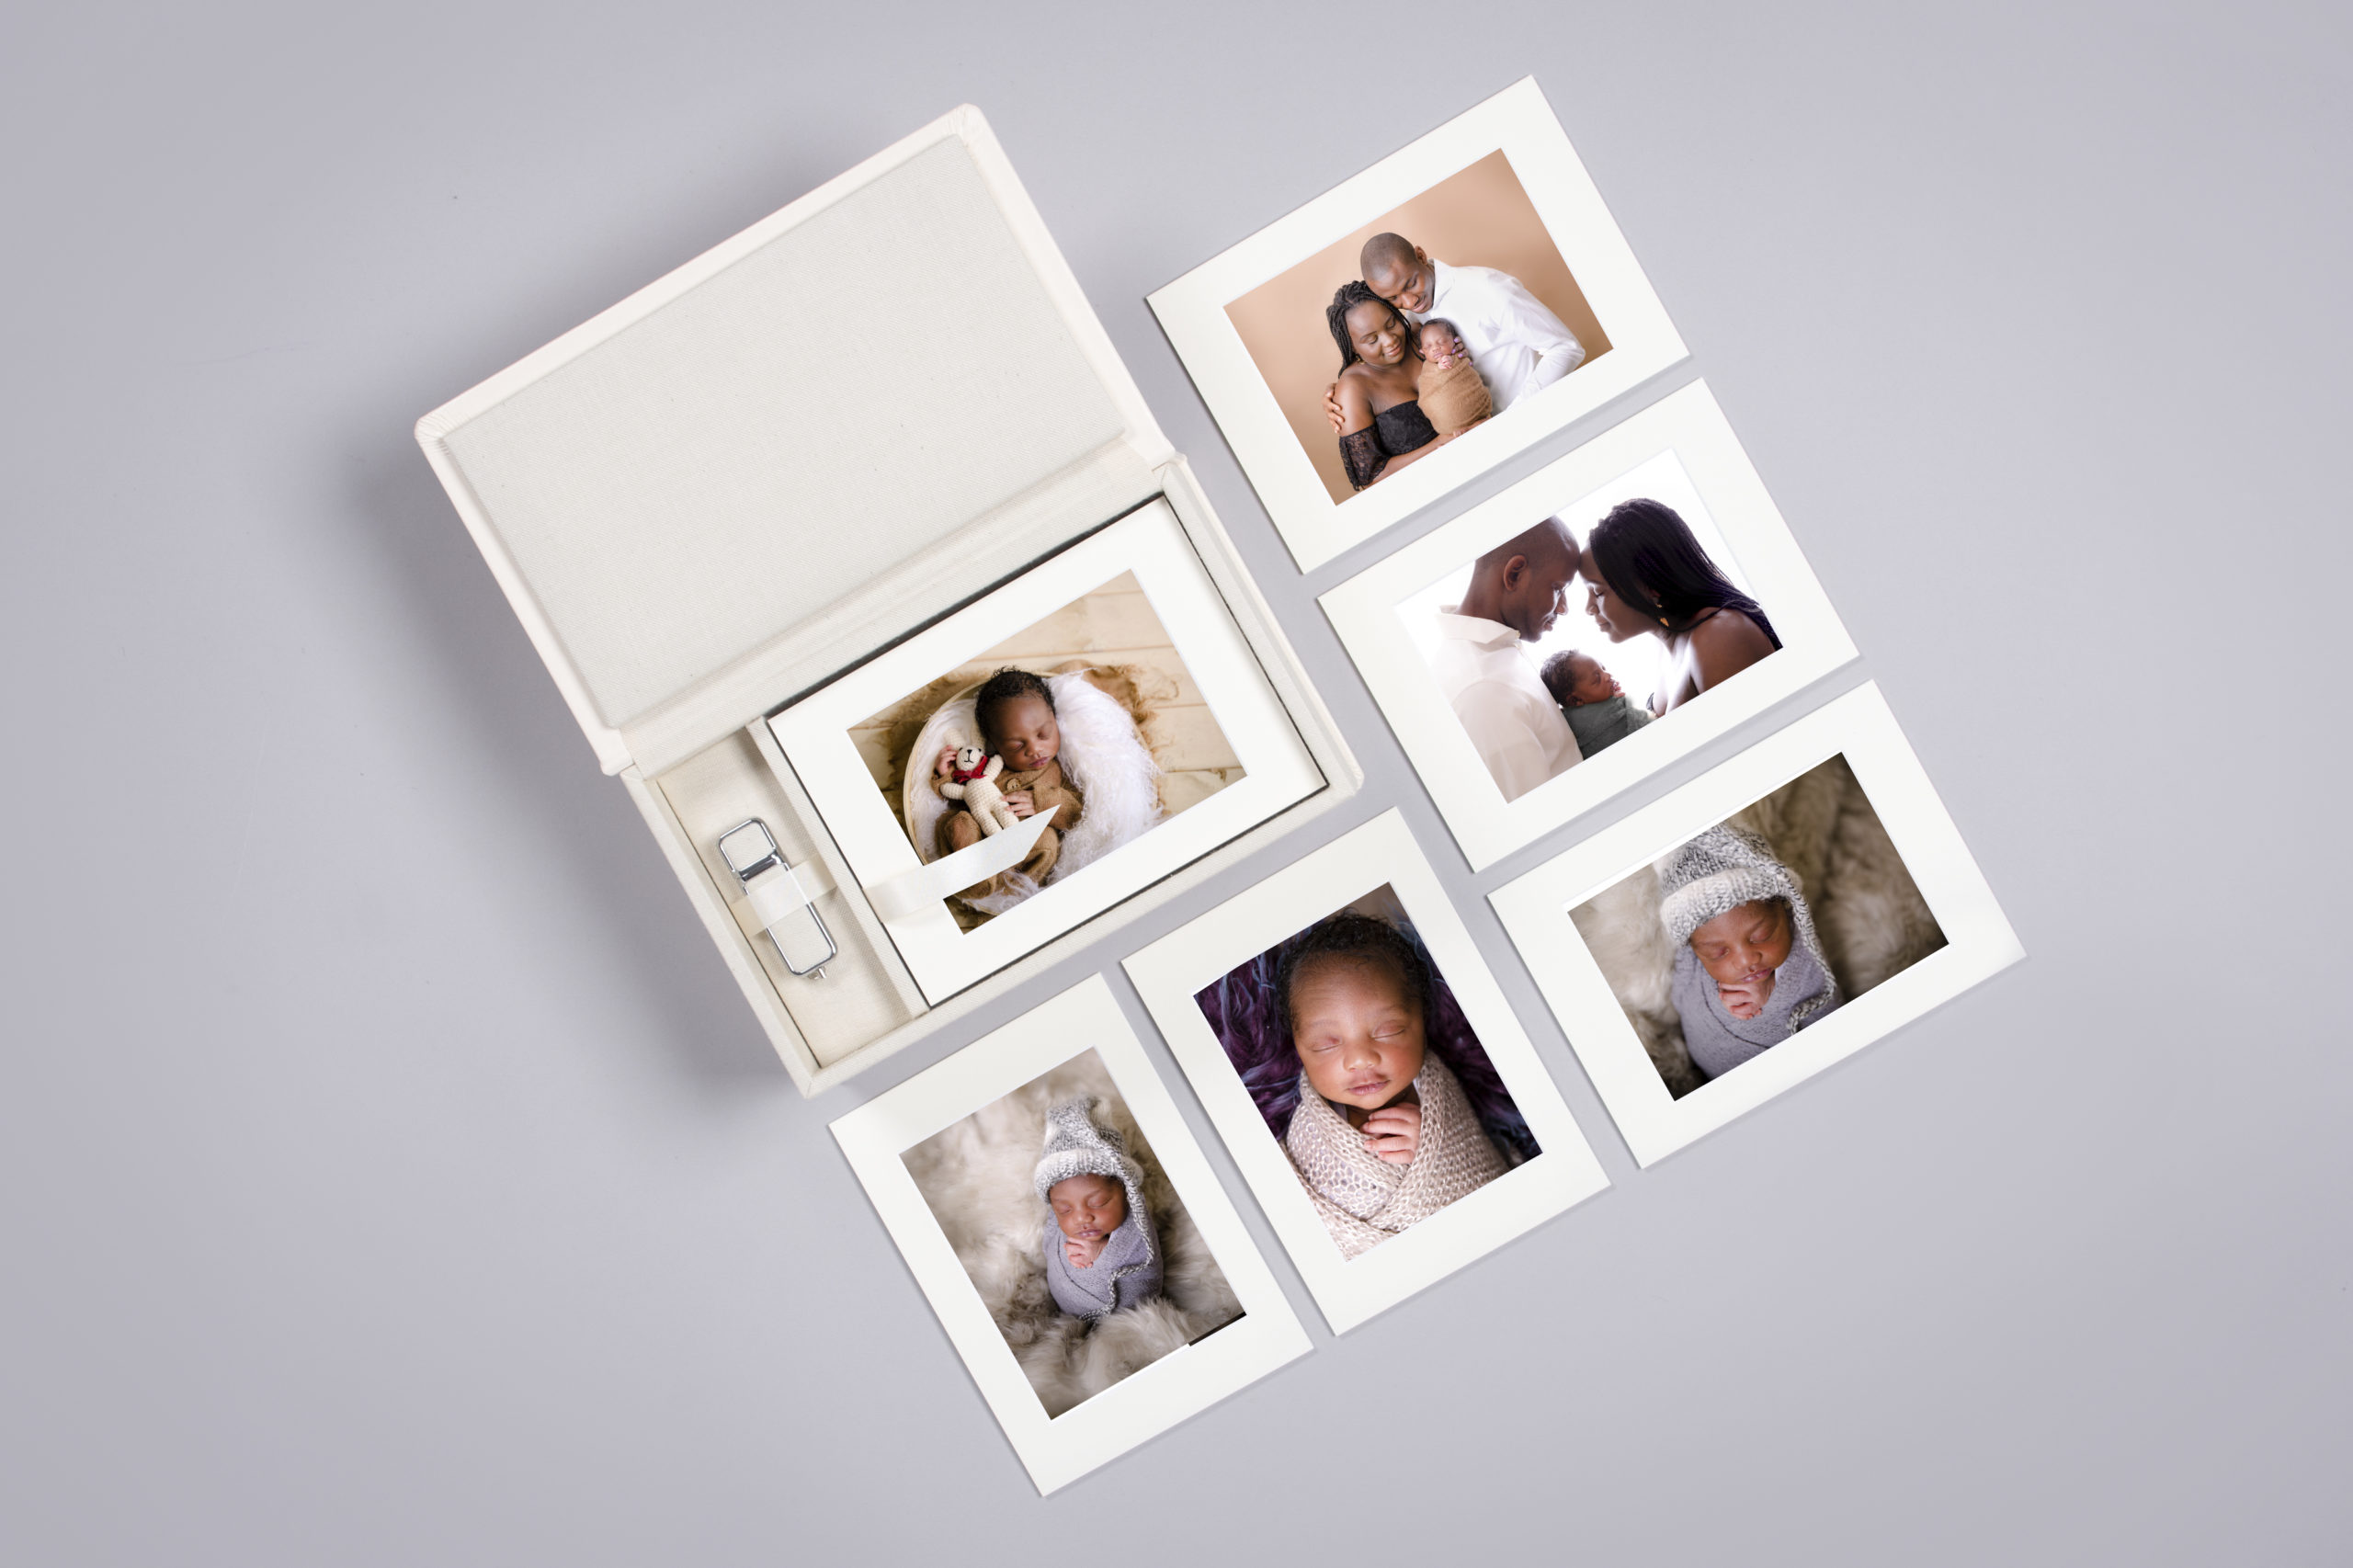 Handmade Folio Memory Box Luxury Printing Products art Prints family portrait child portrait print professional quality prints folio box storage ideas handmade matted paper prints in a photography Studio in Wimbledon South West London